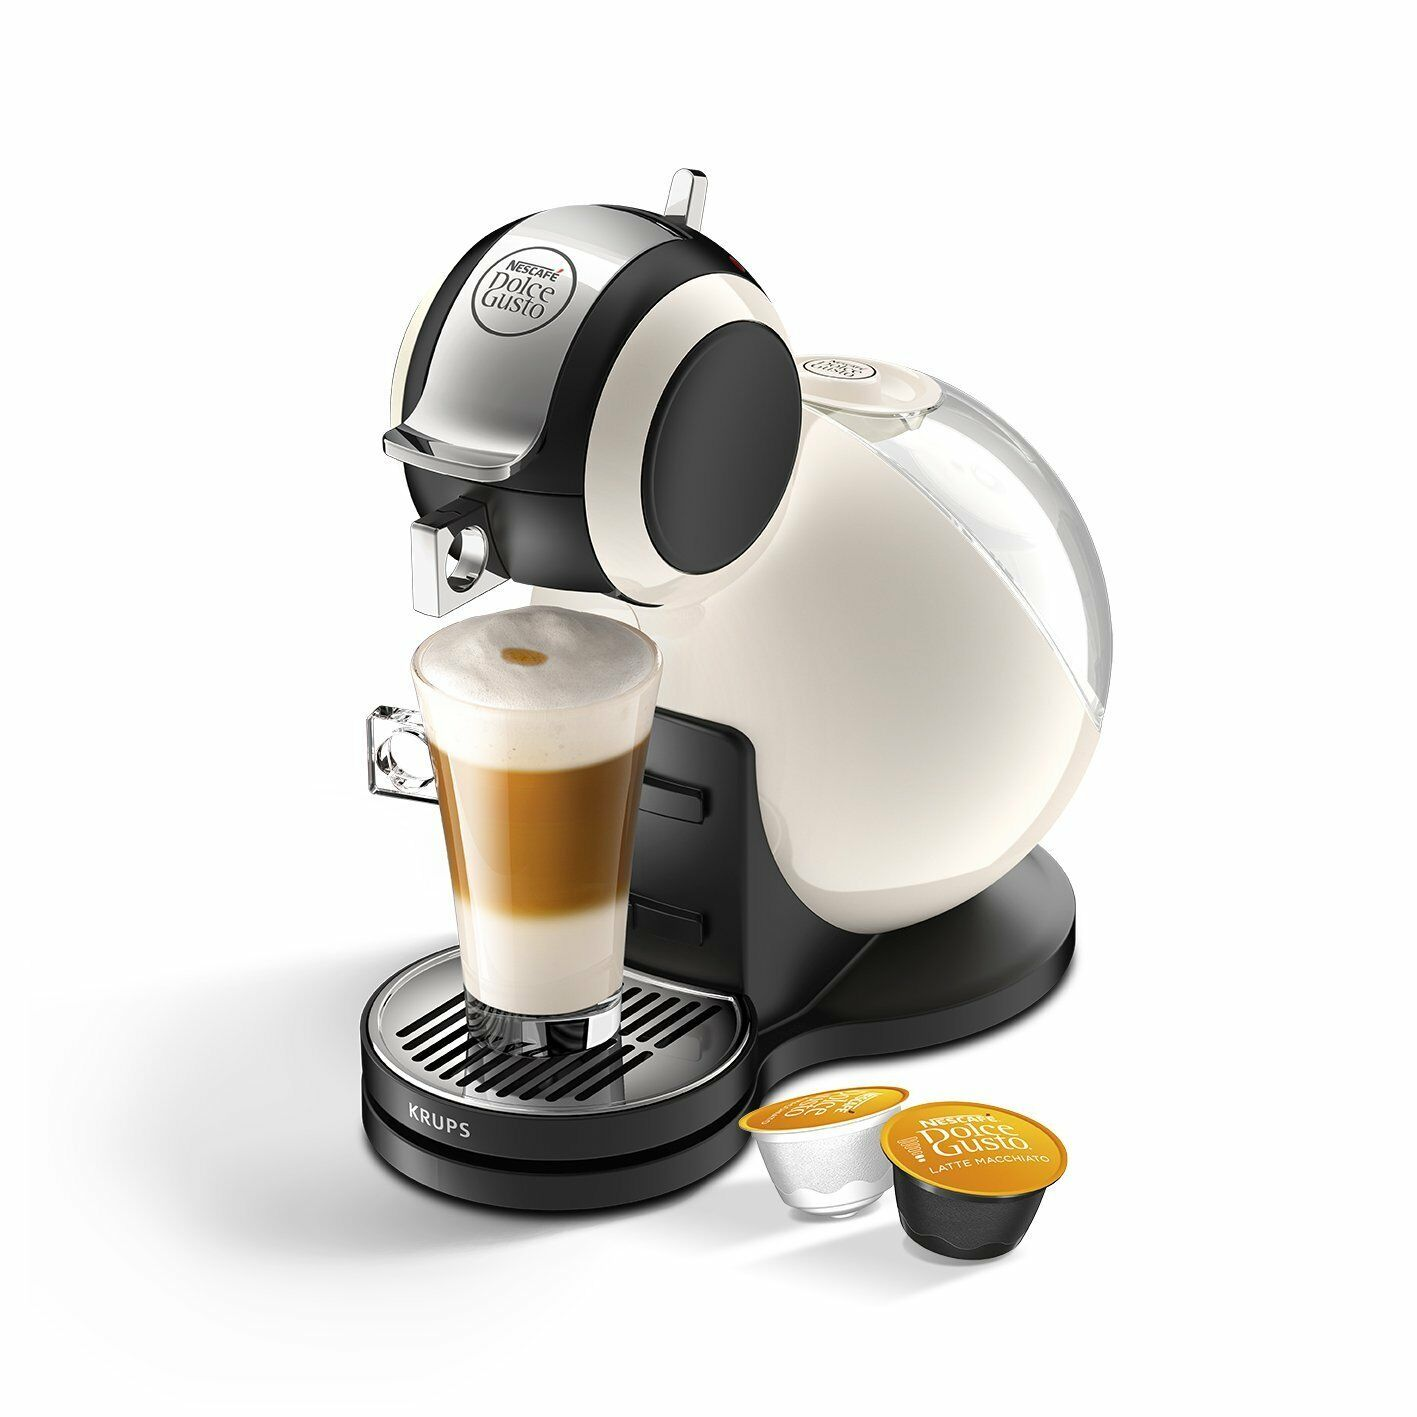 nescafe dolce gusto melody 3 manual coffee machine by. Black Bedroom Furniture Sets. Home Design Ideas